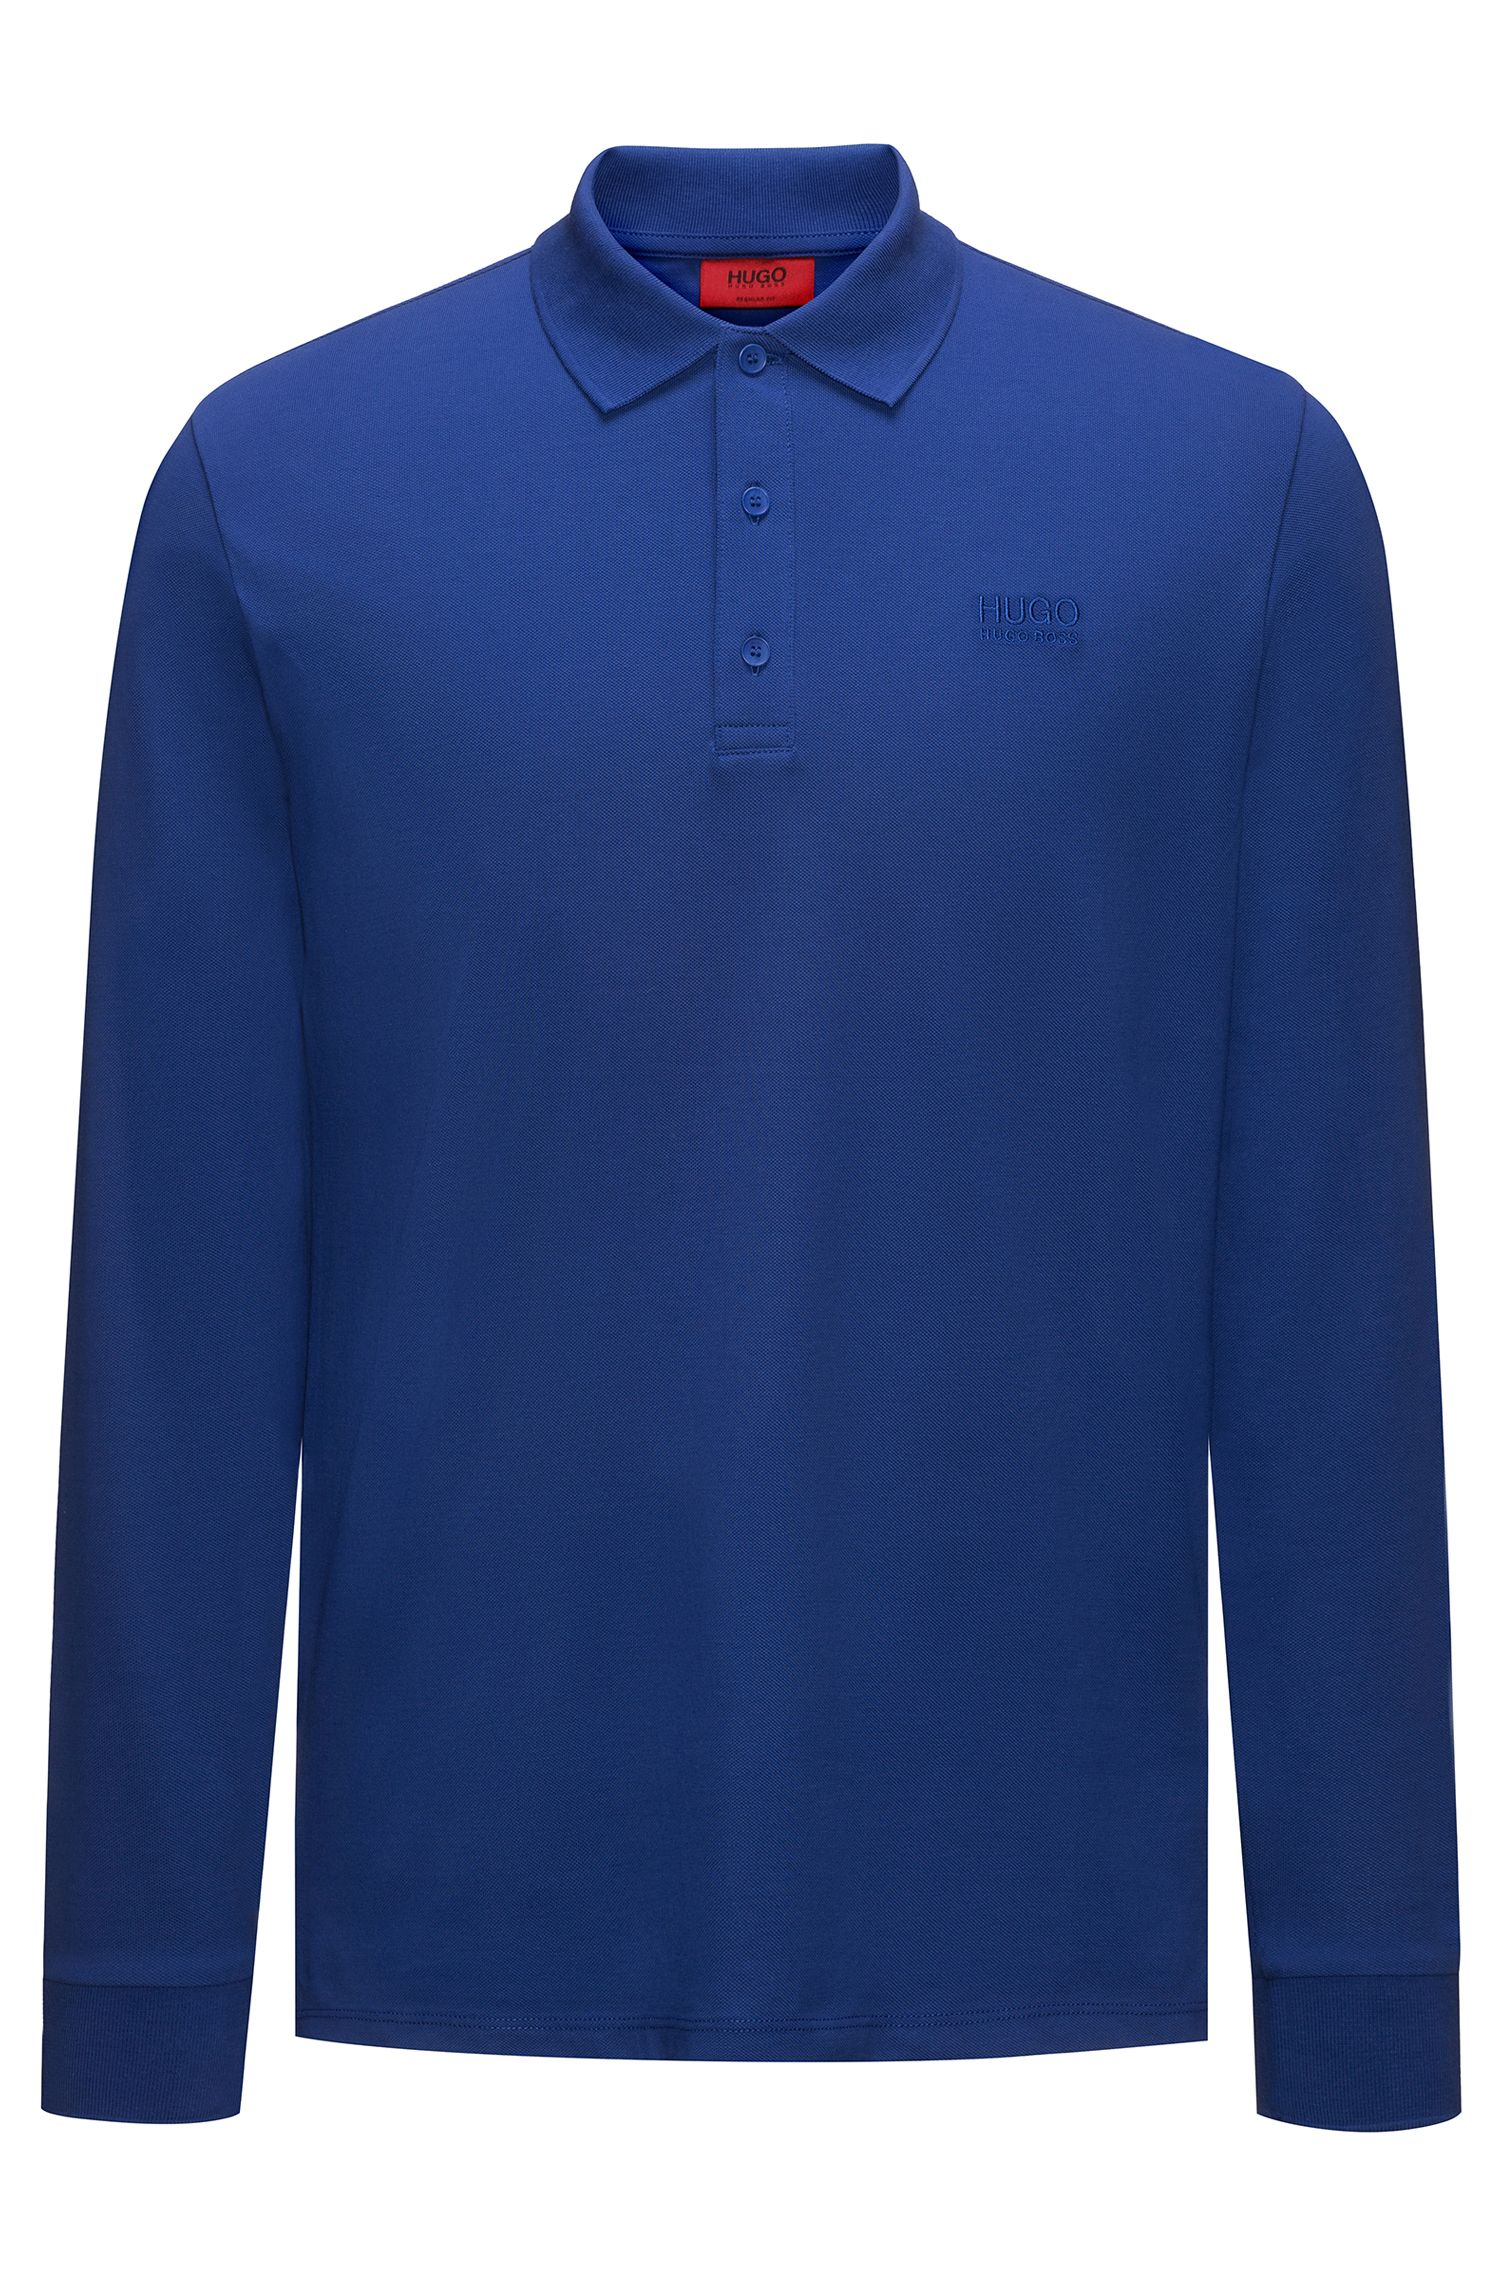 Regular-fit long-sleeved polo shirt in cotton piqué